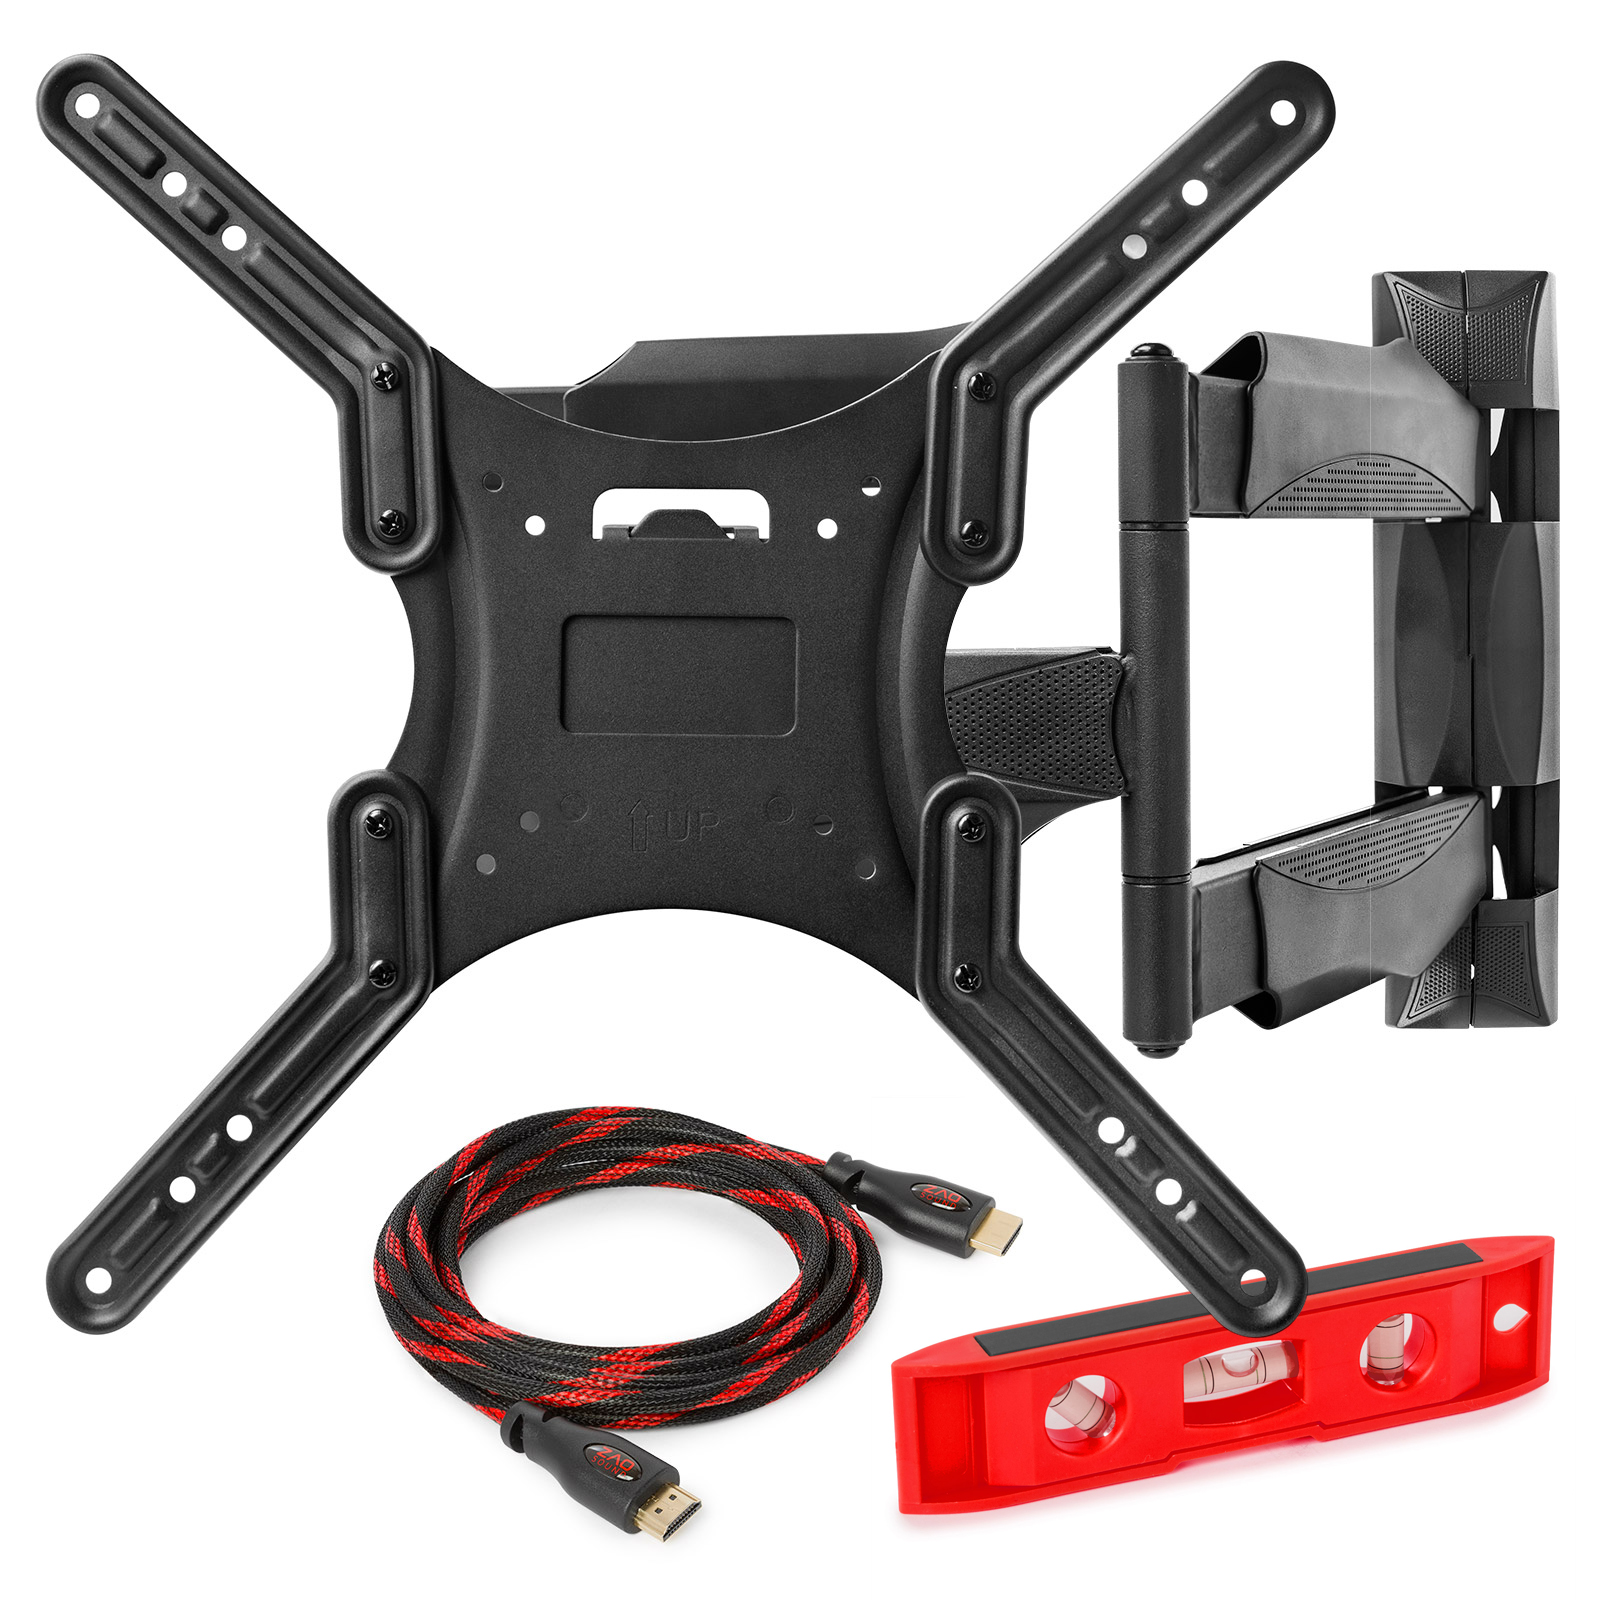 Full Motion TV Wall Mount Monitor Bracket for 22-52 Inch LED, LCD and Plasma Flat Screen Displays up to VESA 400x400. Universal Fit, Swivel, Tilt, Articulating with 10' HDMI Cable